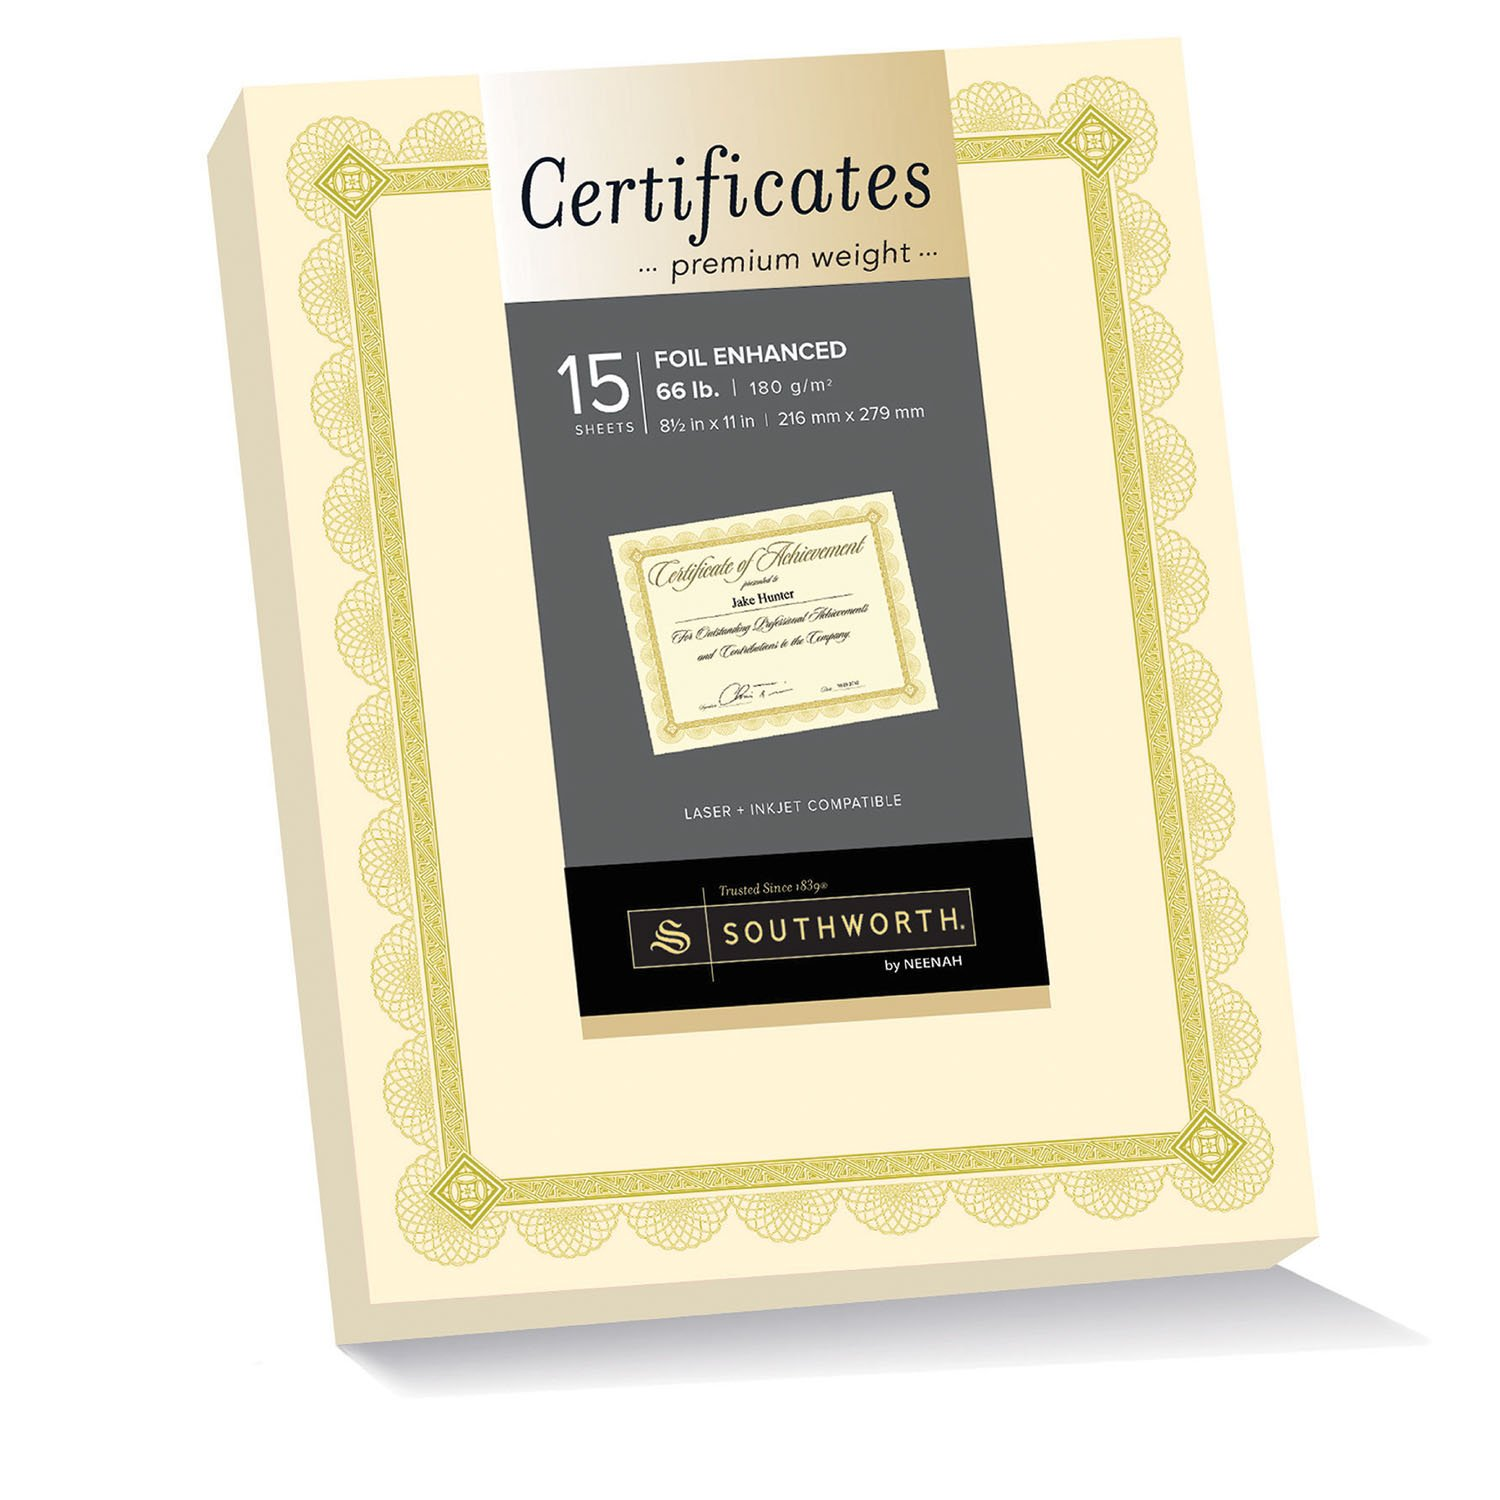 Southworth Premium Weight Certificates, Spiro Design, Gold Foil, 66 lb, Ivory, Pack of 15 (CTP2V) NEENA